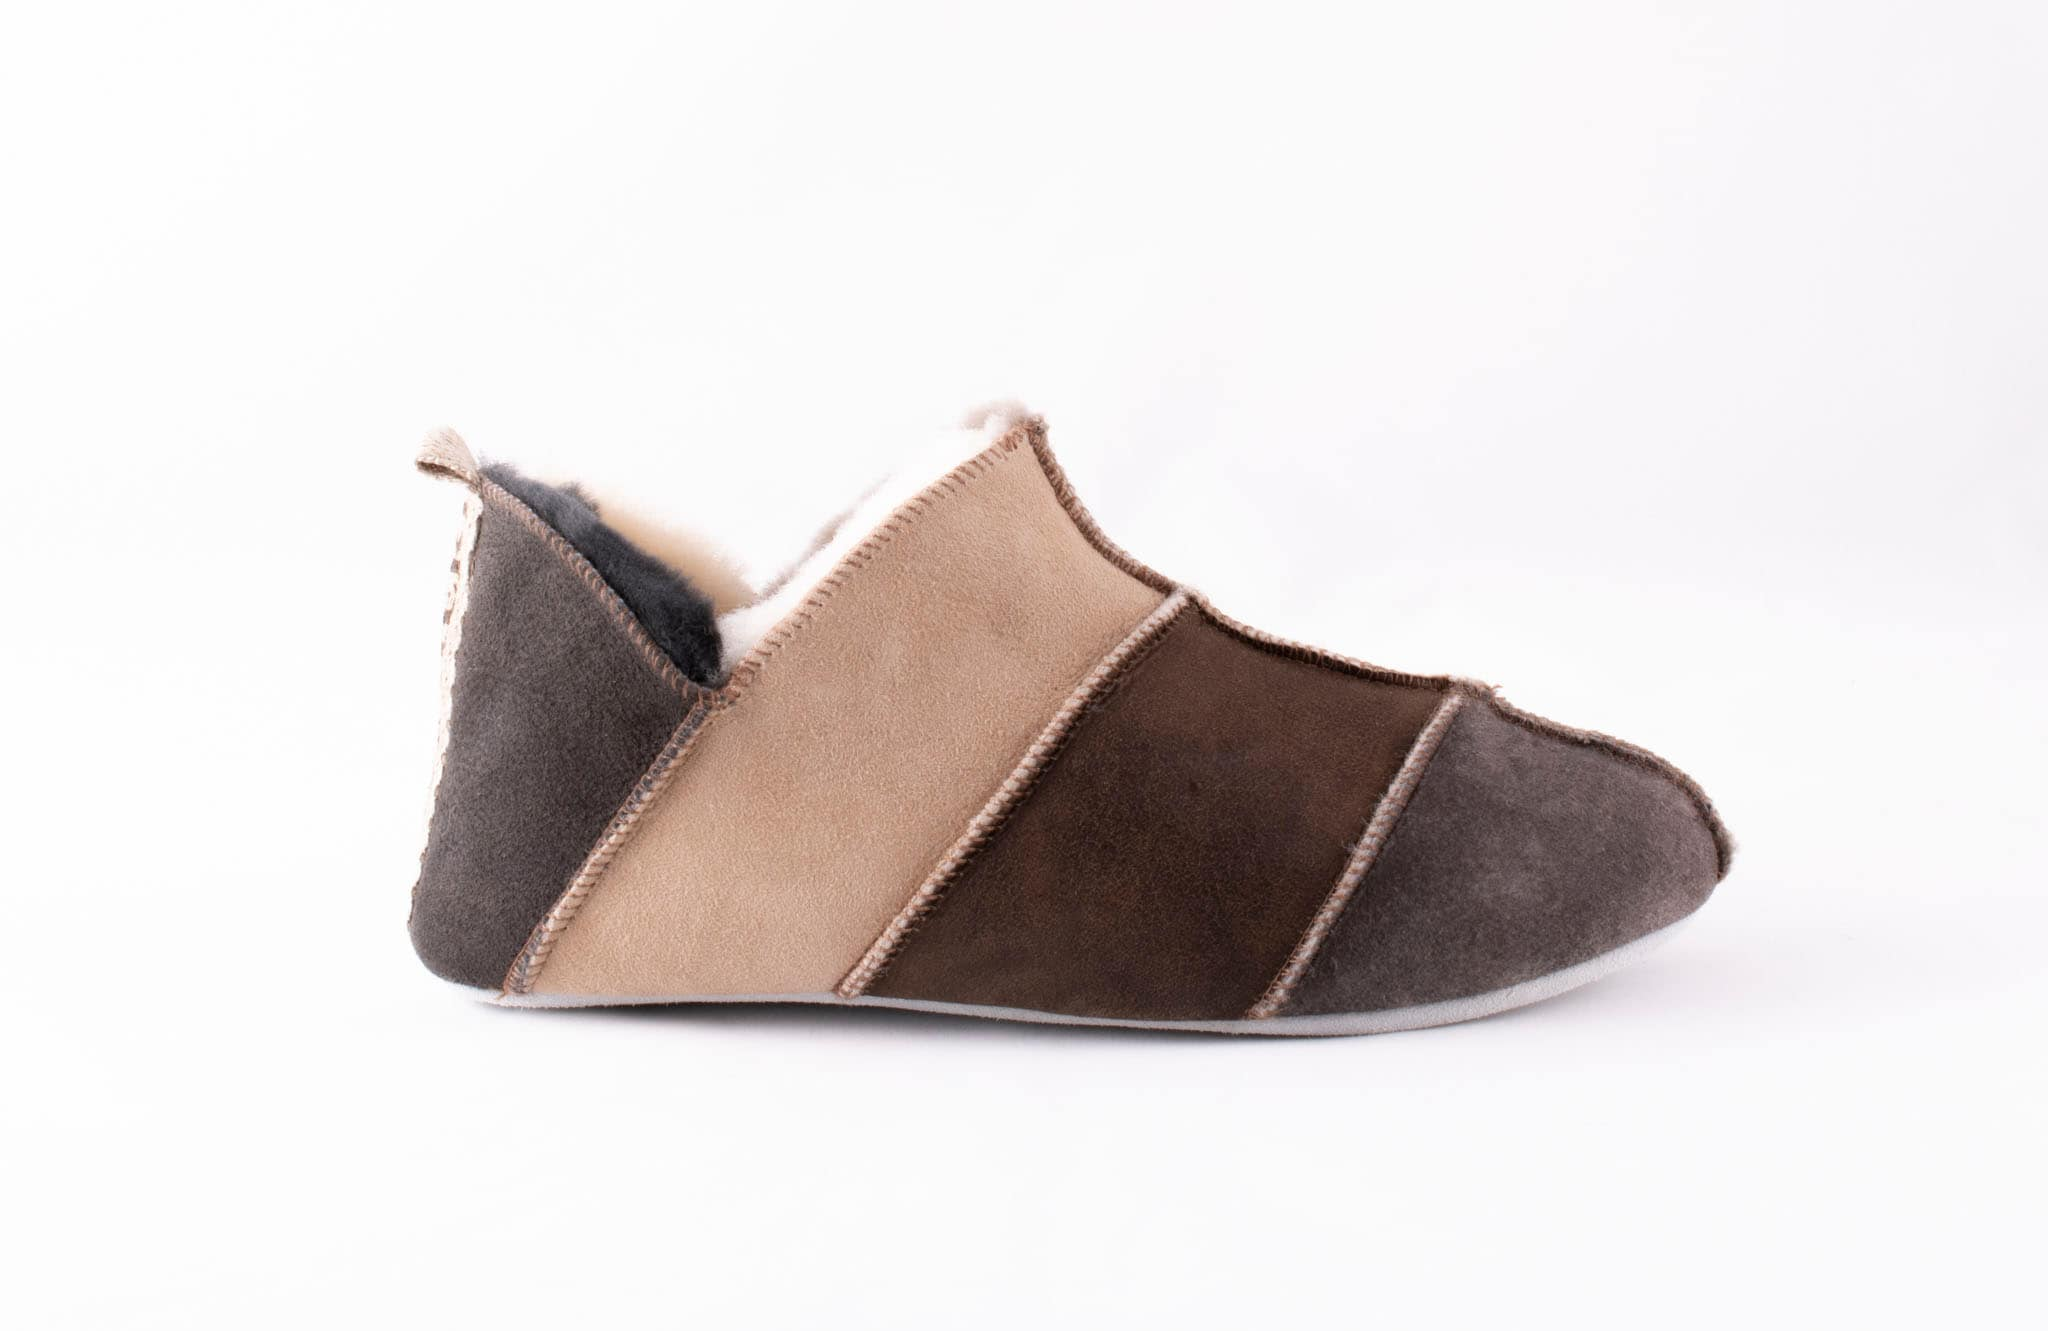 Nora sheepskin slippers